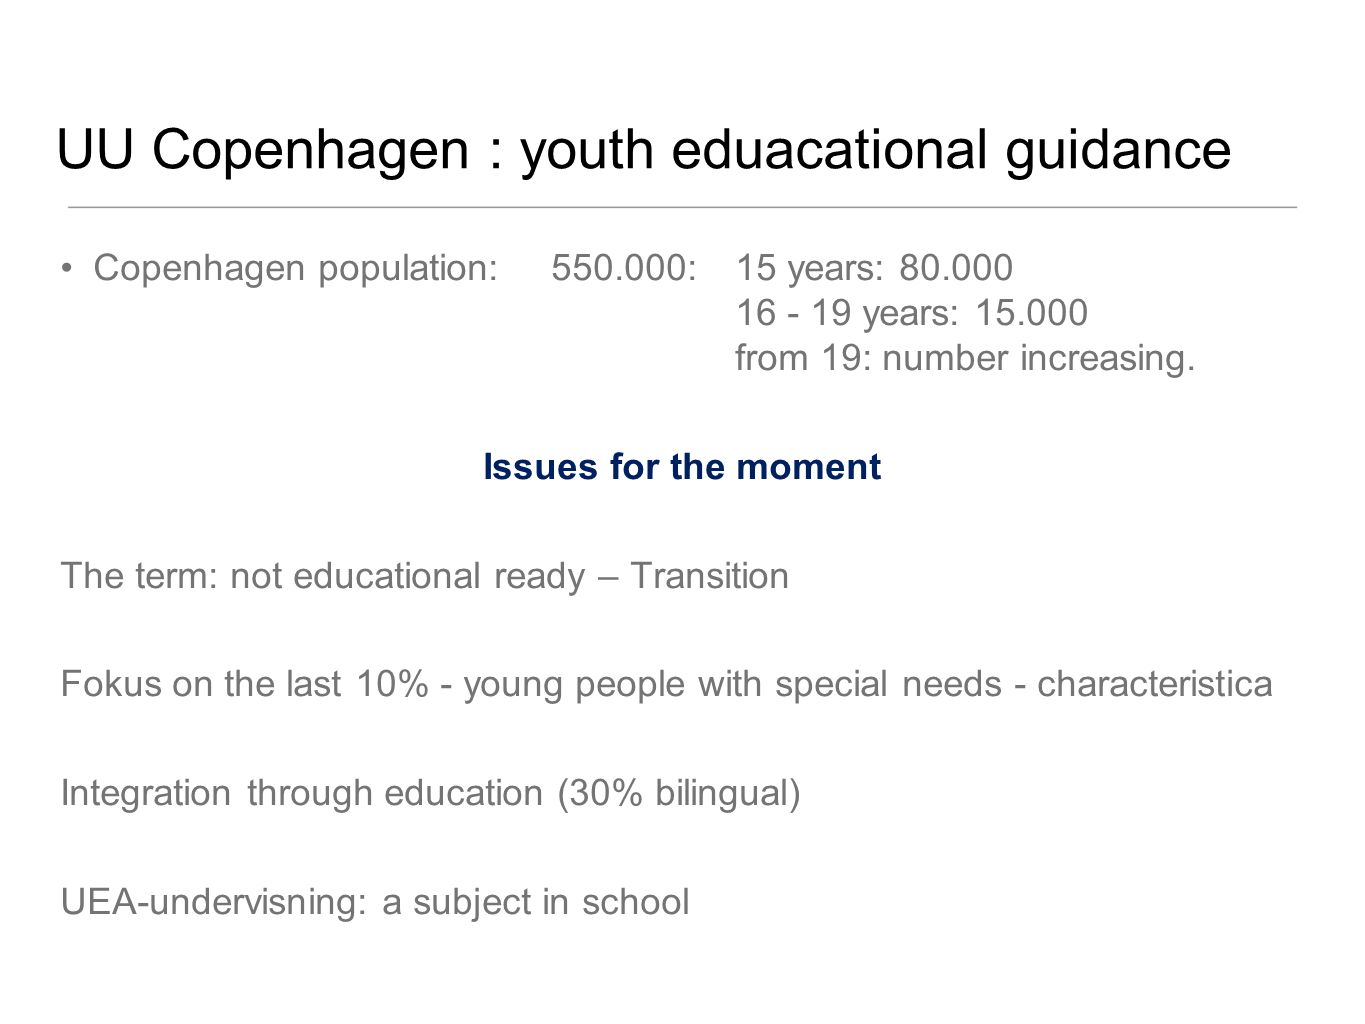 UU Copenhagen : youth eduacational guidance Copenhagen population: 550.000: 15 years: 80.000 16 - 19 years: 15.000 from 19: number increasing.